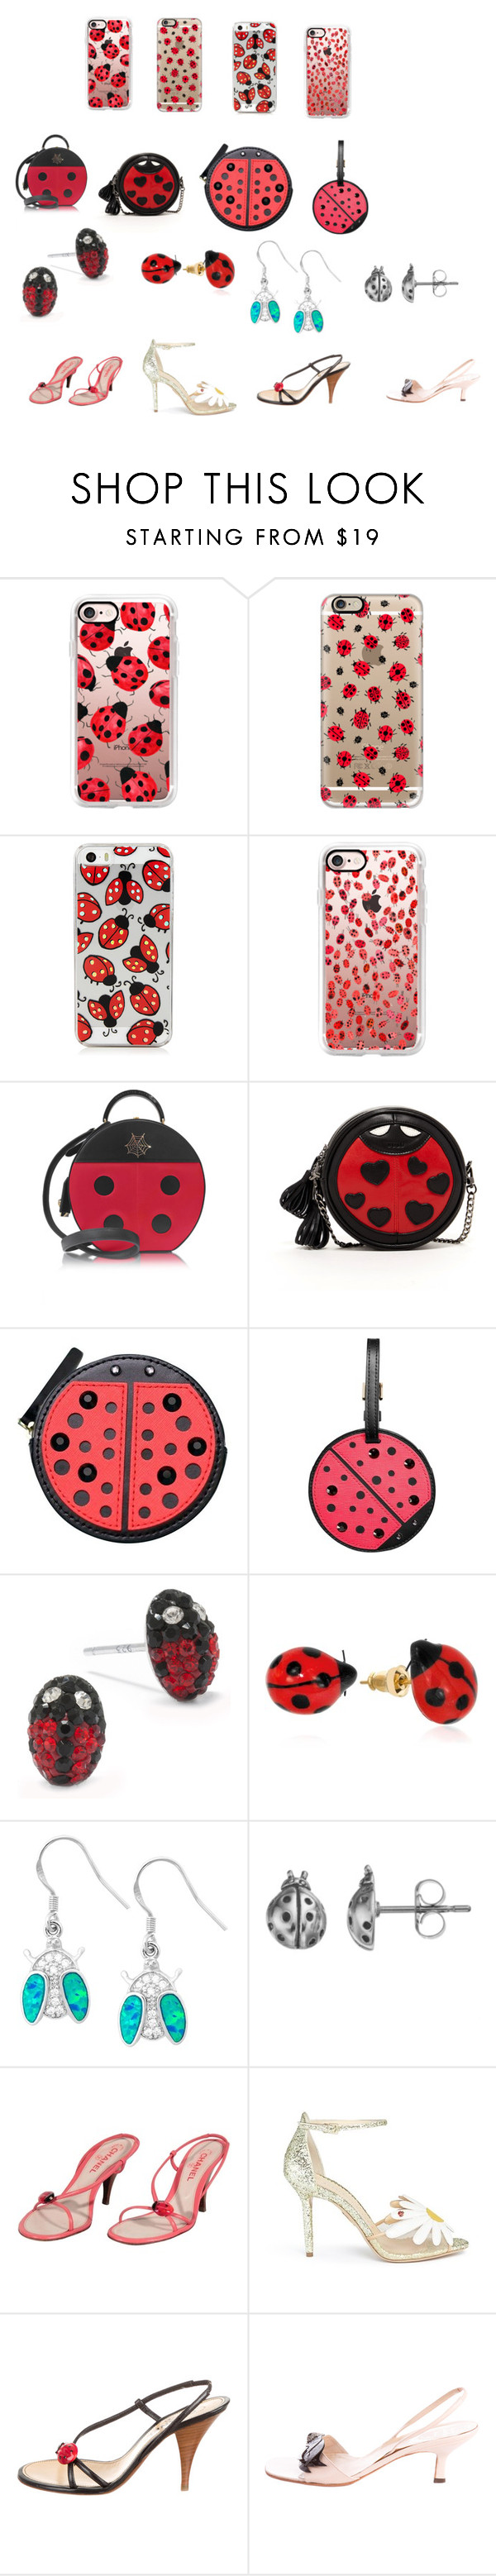 """Super-Ladybug-Fashion-Women"" by ibur-7snowflakes ❤ liked on Polyvore featuring Casetify, Charlotte Olympia, SUSU, Kate Spade, Silver Treasures, Nach, La Preciosa, Journee Collection, Chanel and René Caovilla"